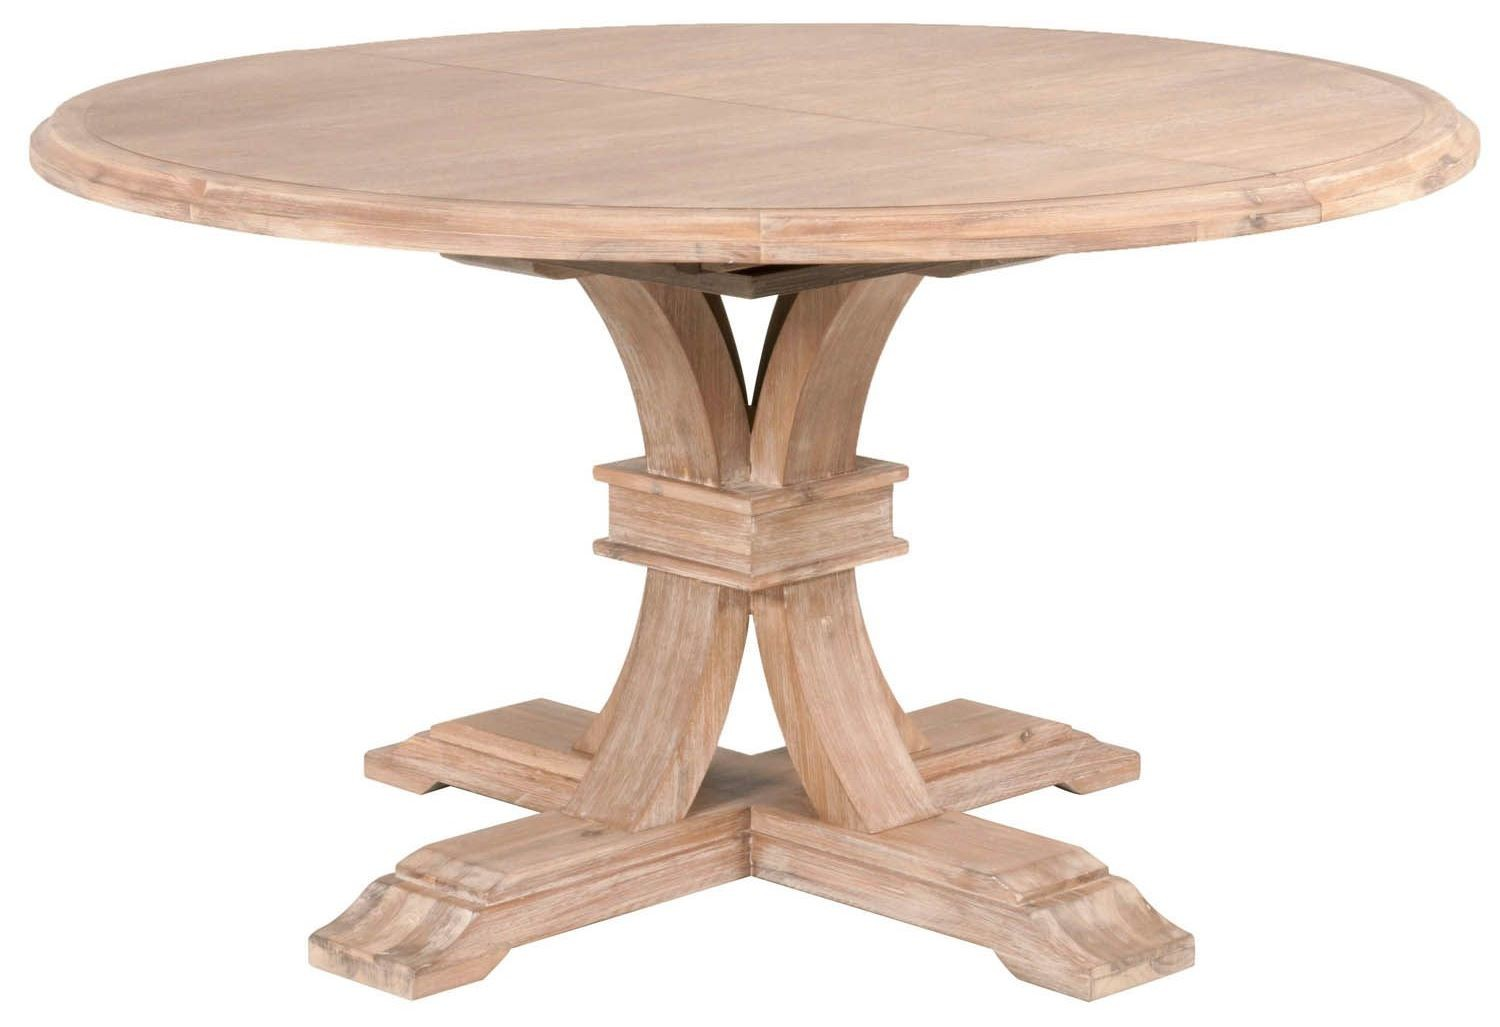 Traditions Stone Wash Devon Round Extendable Dining Table  : devonroundextdtsw2 from colemanfurniture.com size 1500 x 1027 jpeg 124kB